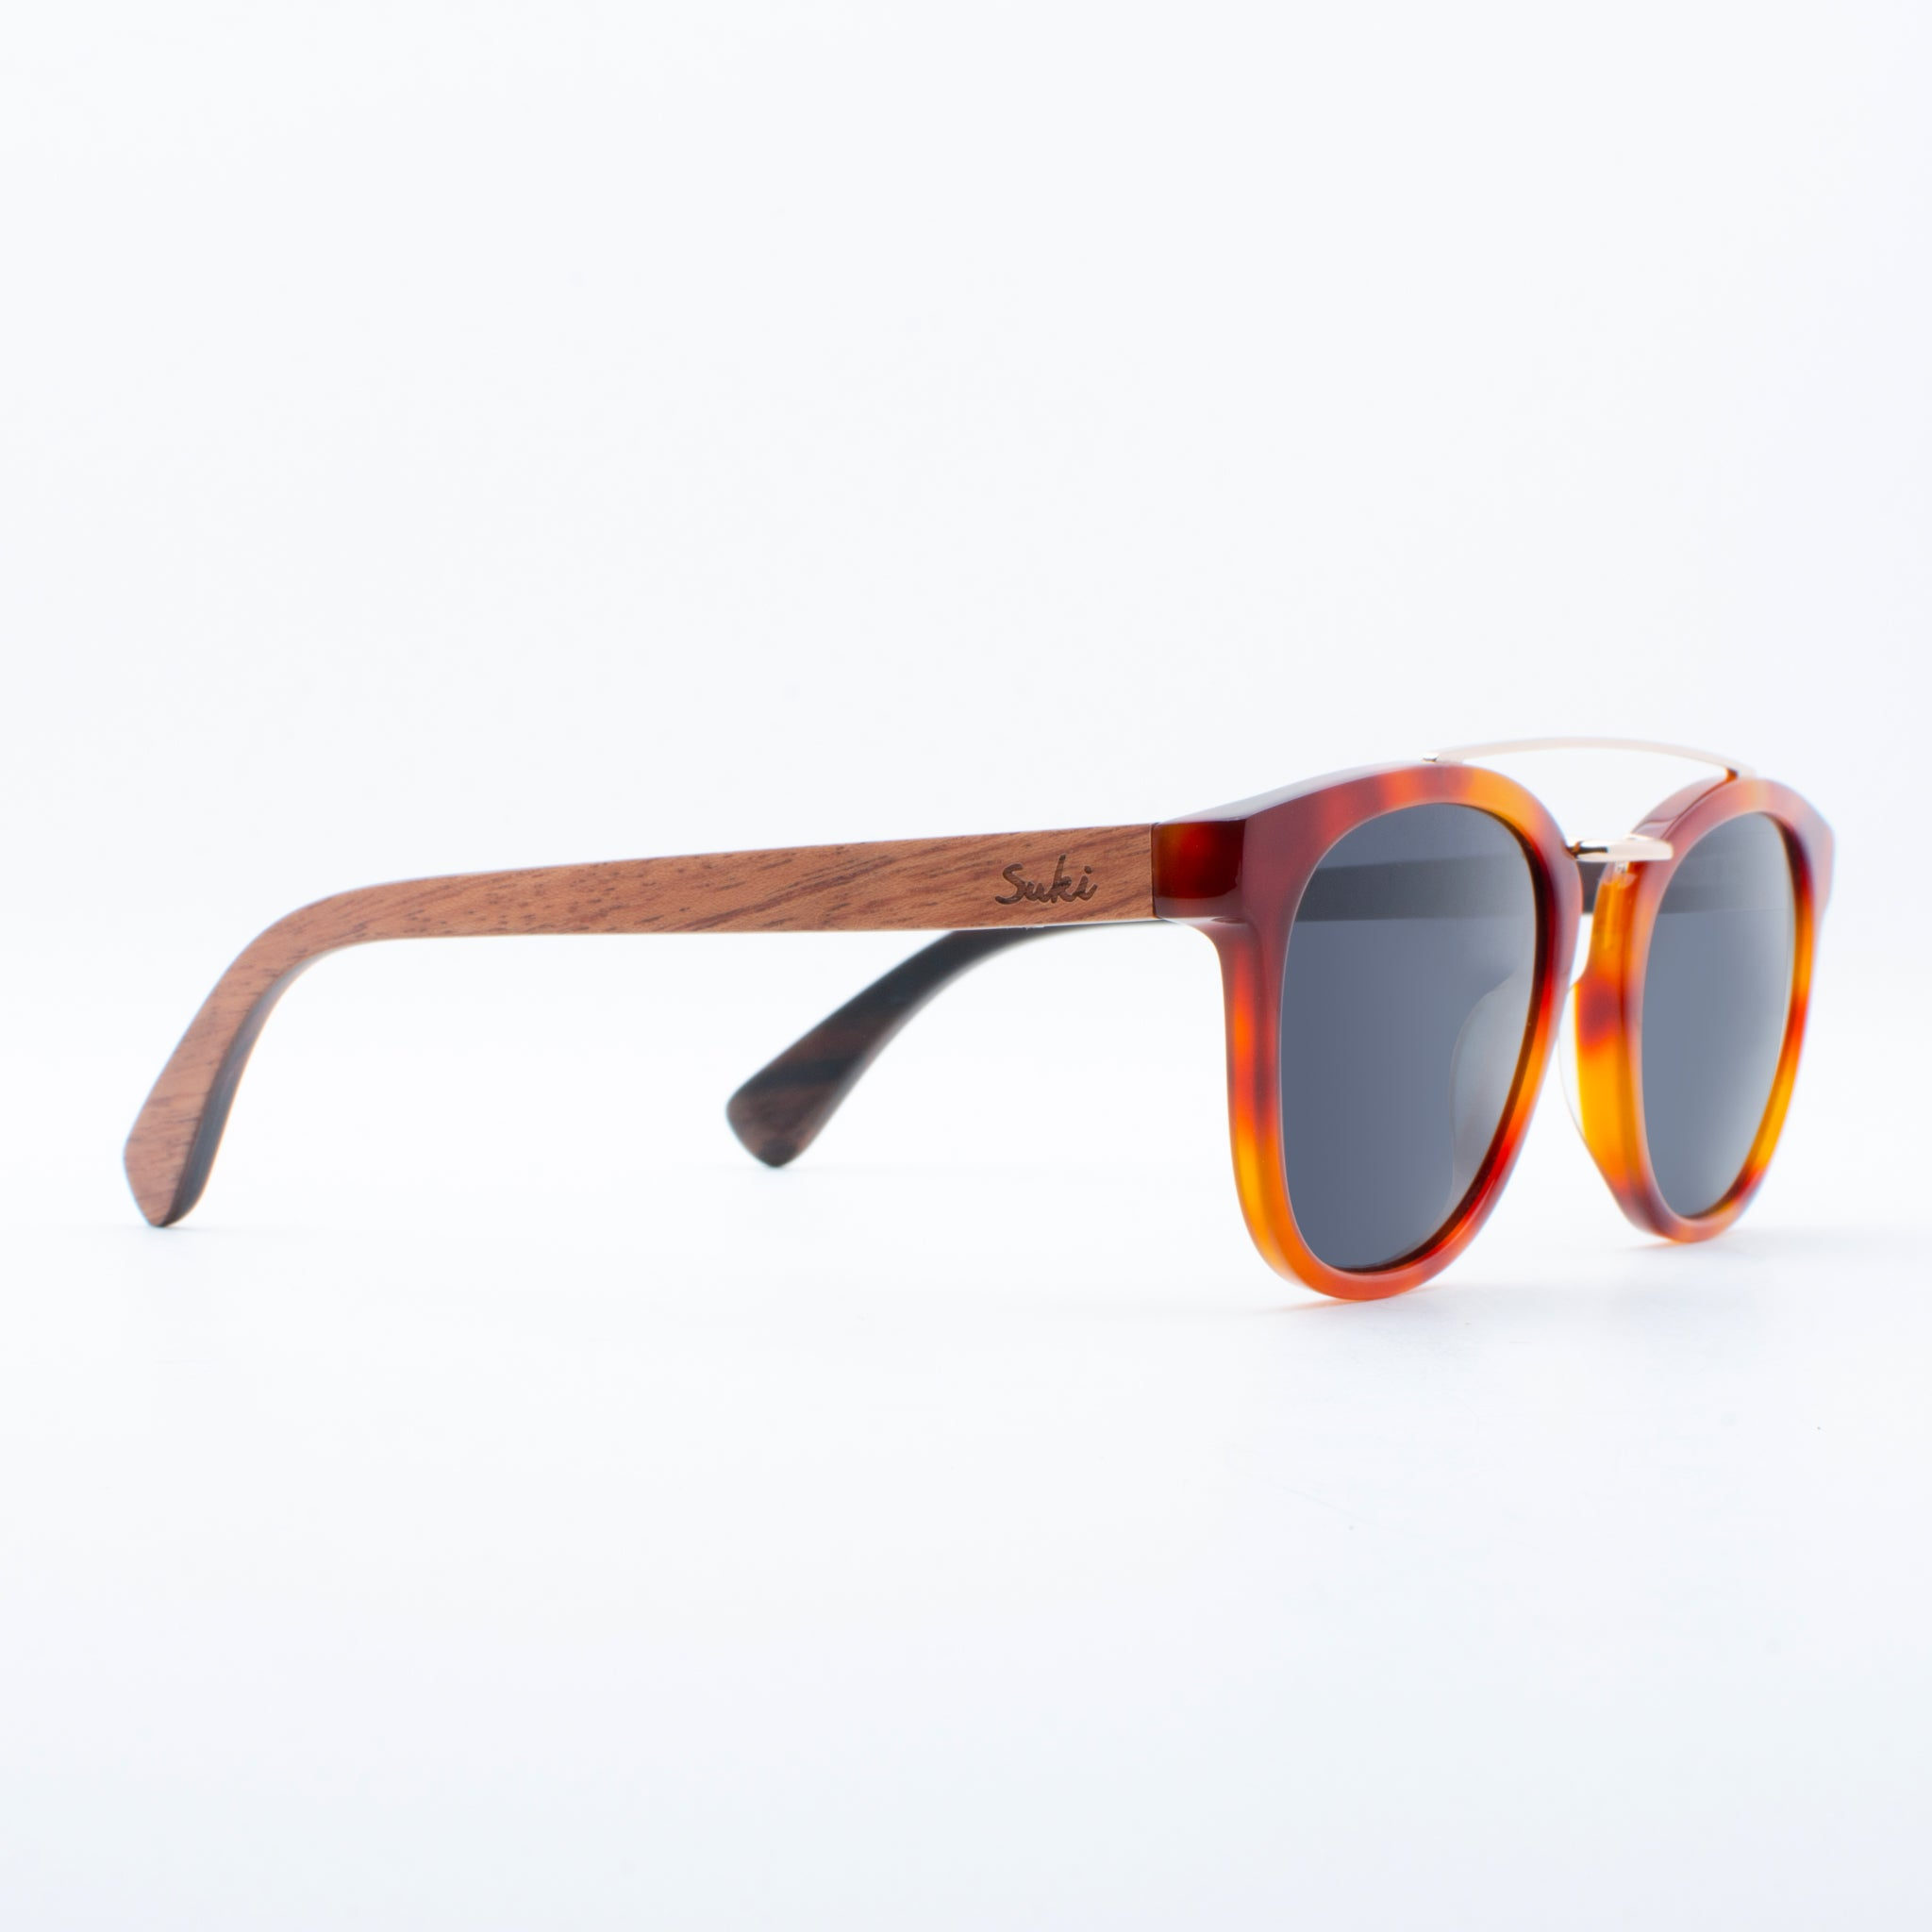 WOODEN SUNGLASSES GAMA RED TORTOISE SUKI